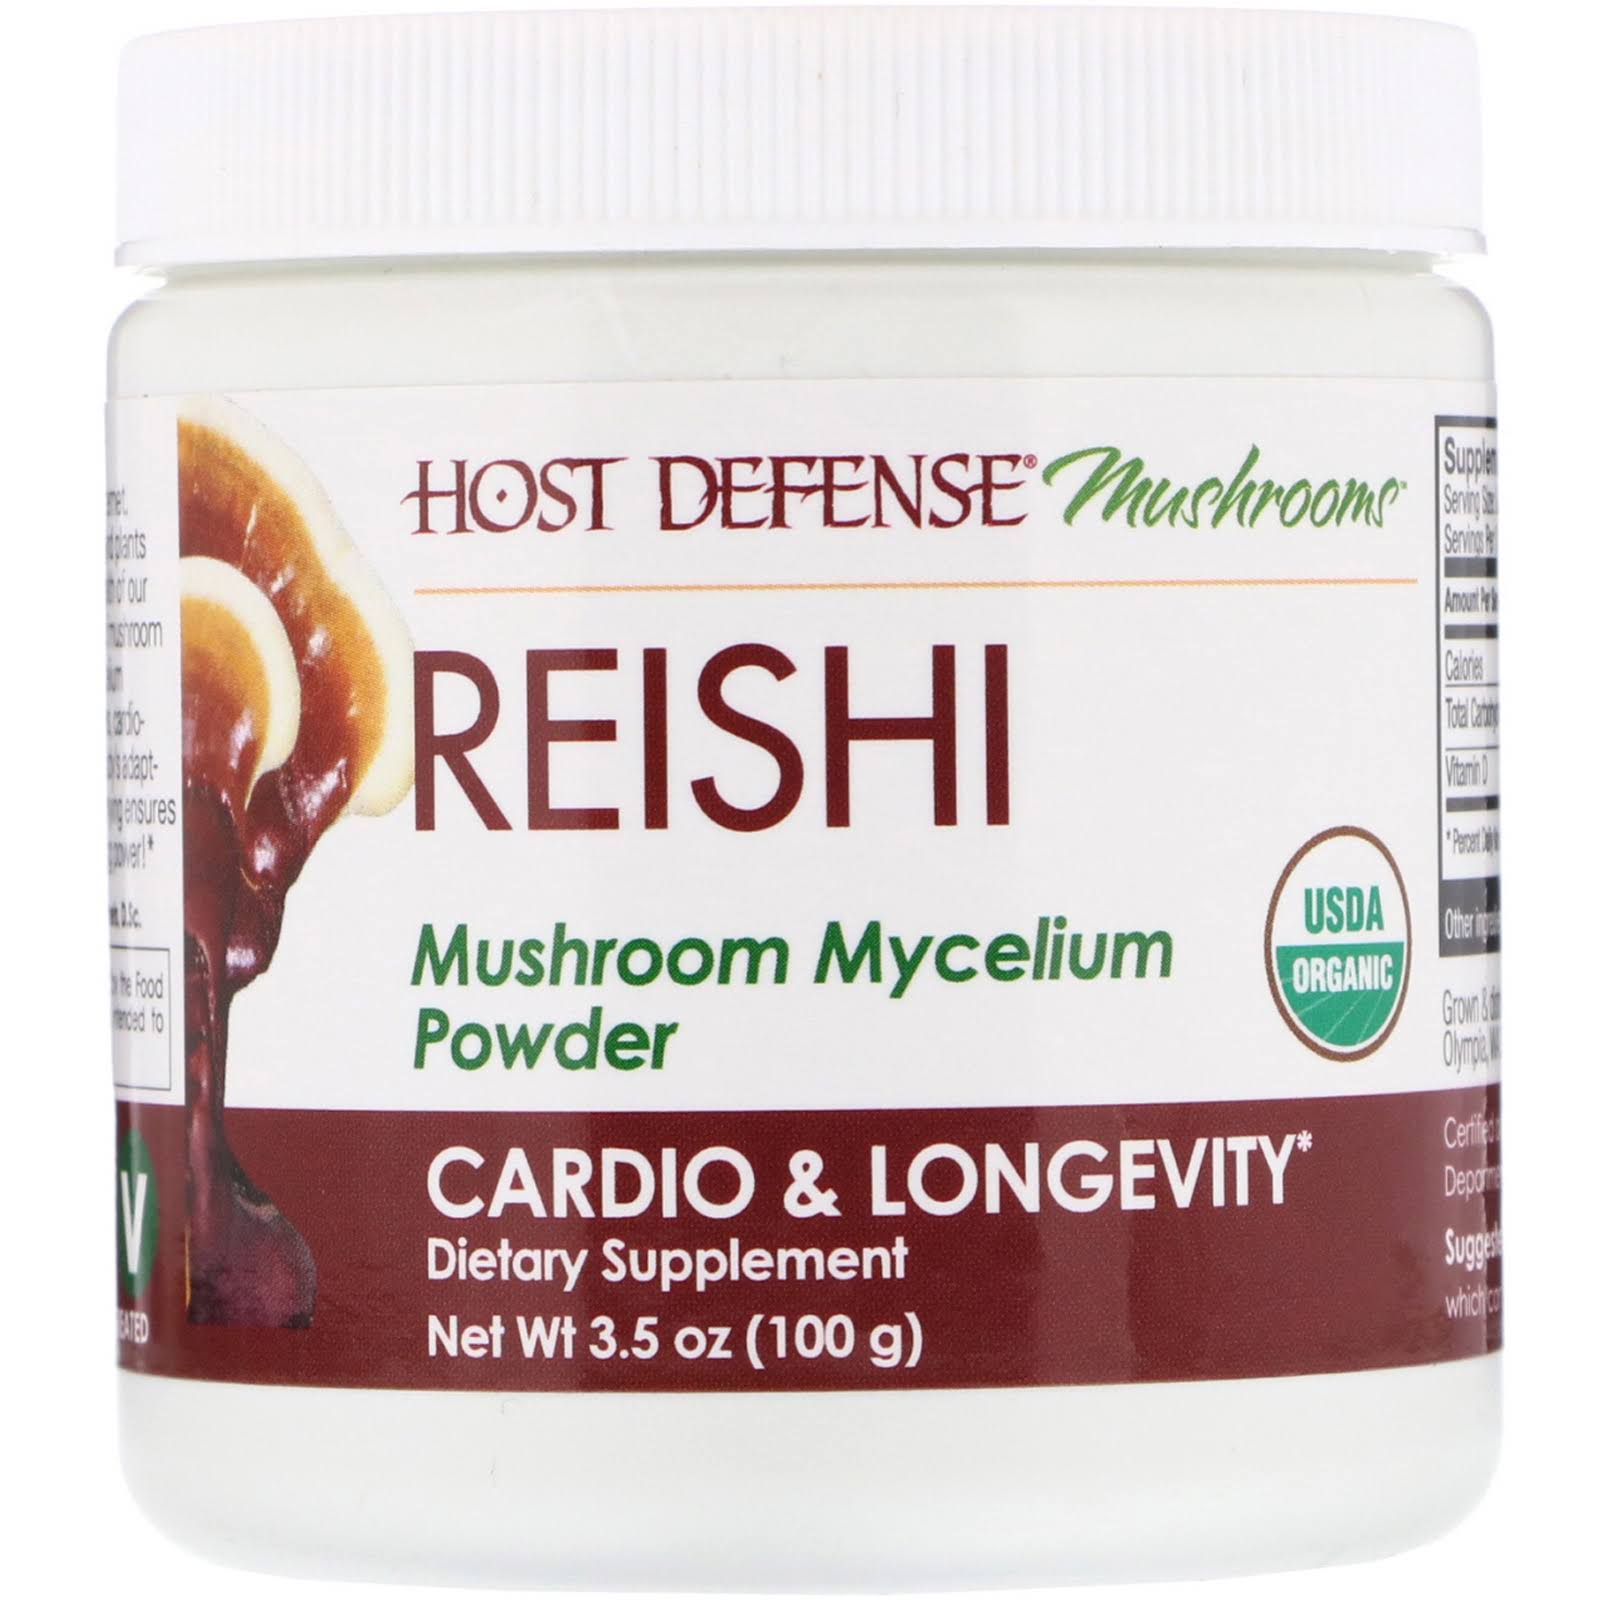 Host Defense Reishi Mushroom Mycelium Powder 3.5oz